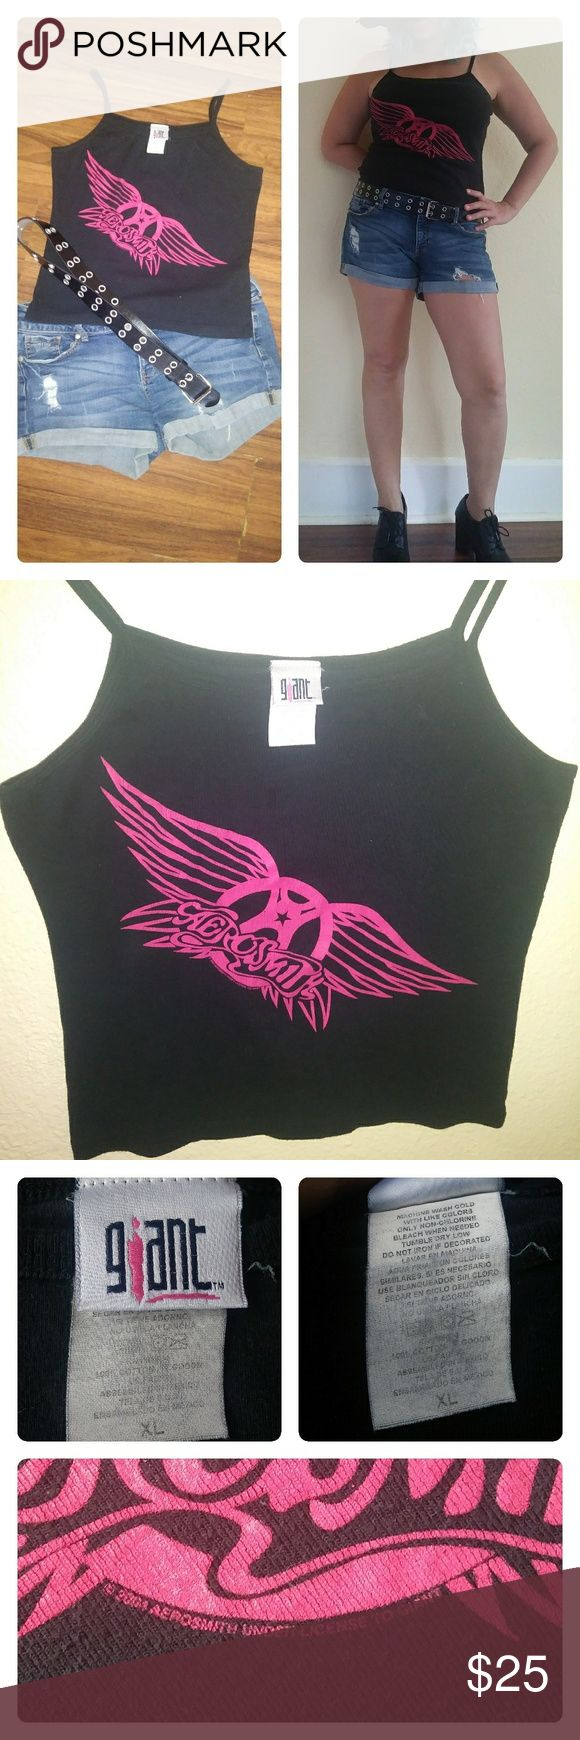 VINTAGE Aerosmith Concert Tank Vintage Aerosmith tour, biker style tank. This awesome tank from the 2004 'Honkin' on Bobo' tour is perfectly worn in. This is one of those pieces you will wear constantly; with jeans, shorts, that one pair of leggings you love. Any concert shirt collector would love to add this to their closet!   SIZE: XL(fits like a Large) *Decal has normal wear/cracking*  *Small imperfection shown*  **Accessories not included**  *All Reasonable Offers Considered* GIANT Tops…